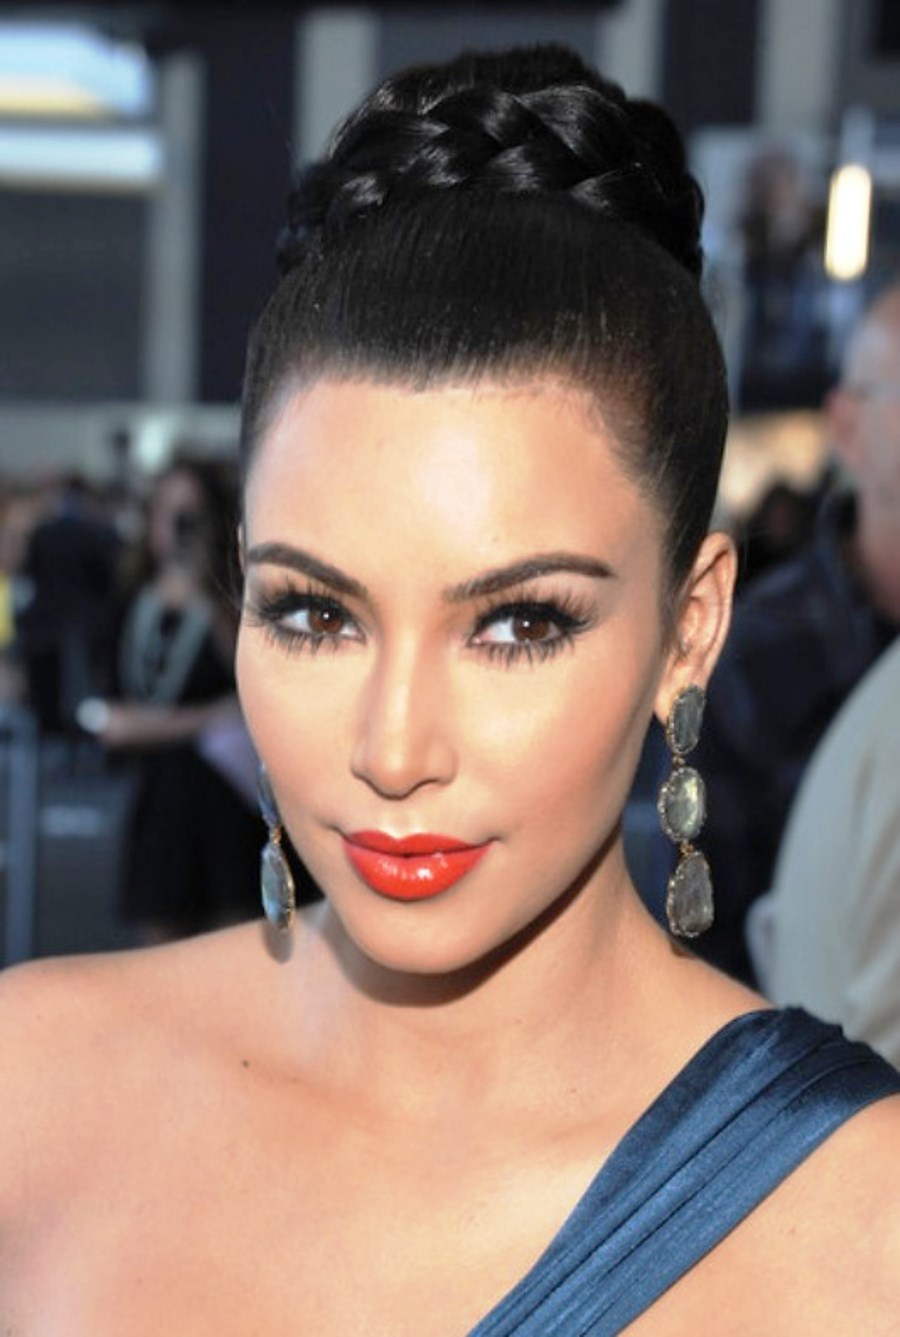 Black Braided Bun Hairstyles Pictures Of Black Braided Bun Hairstyle